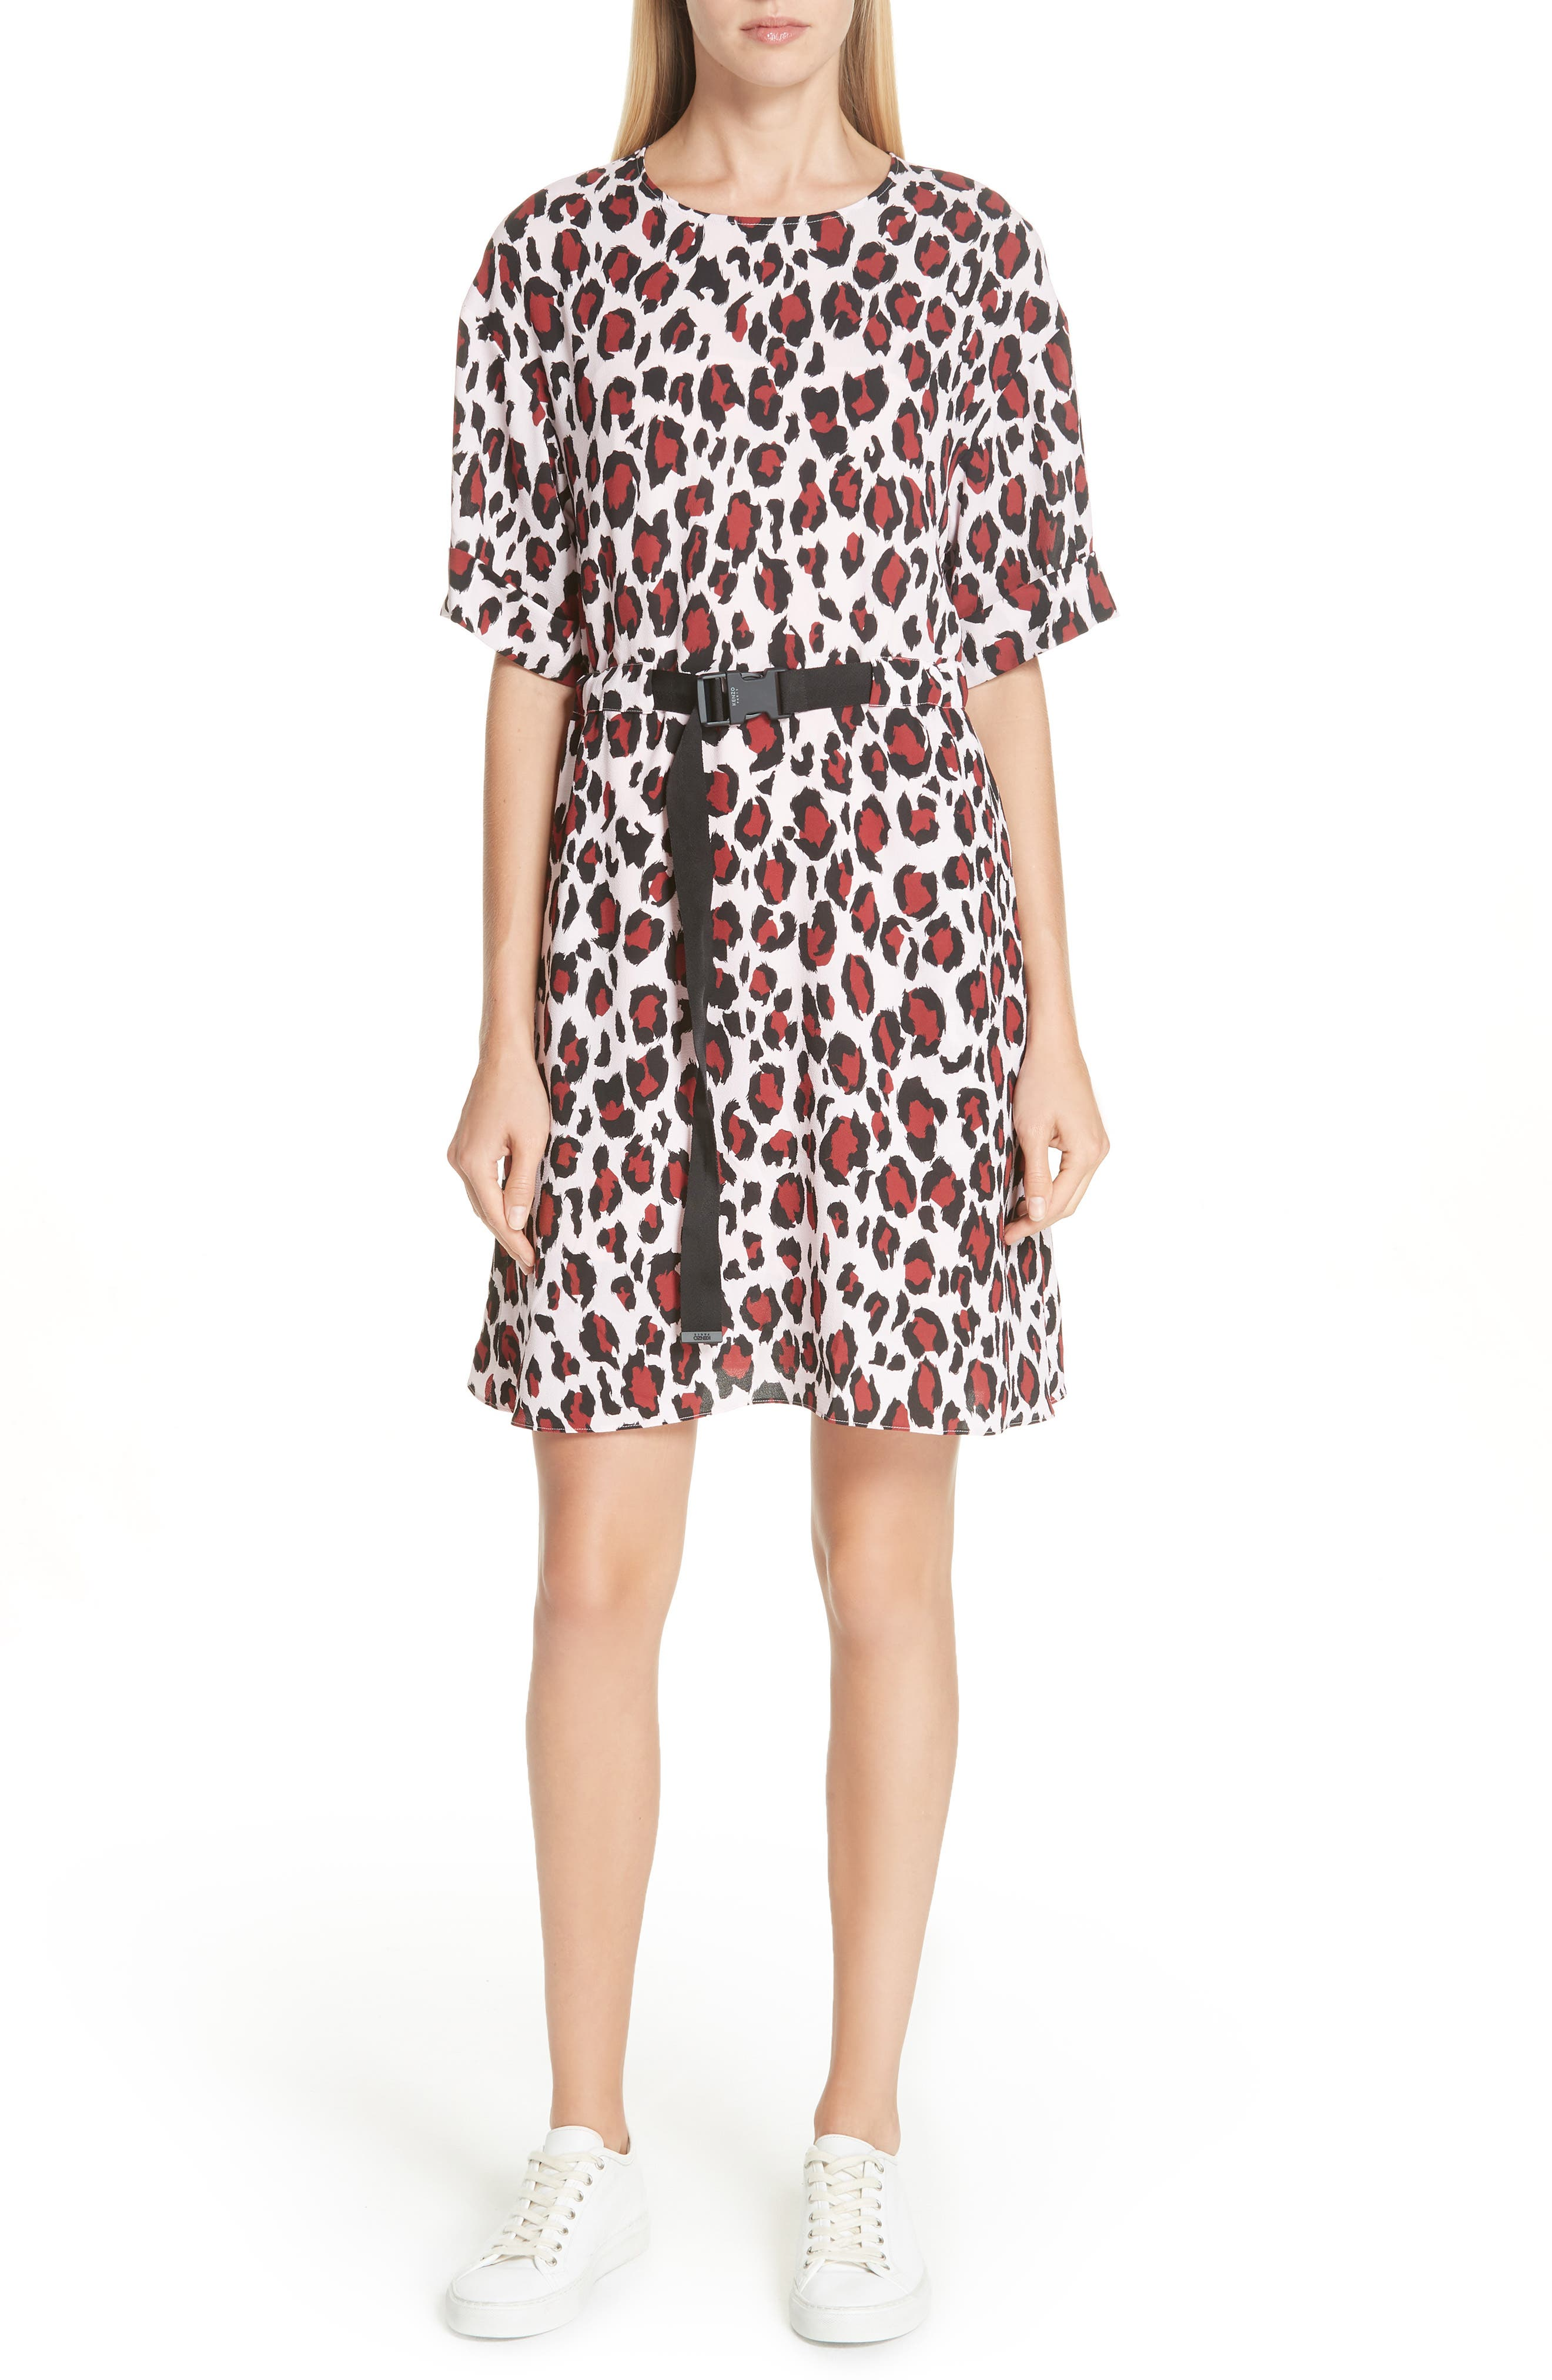 ANIMAL PRINT BELTED DRESS